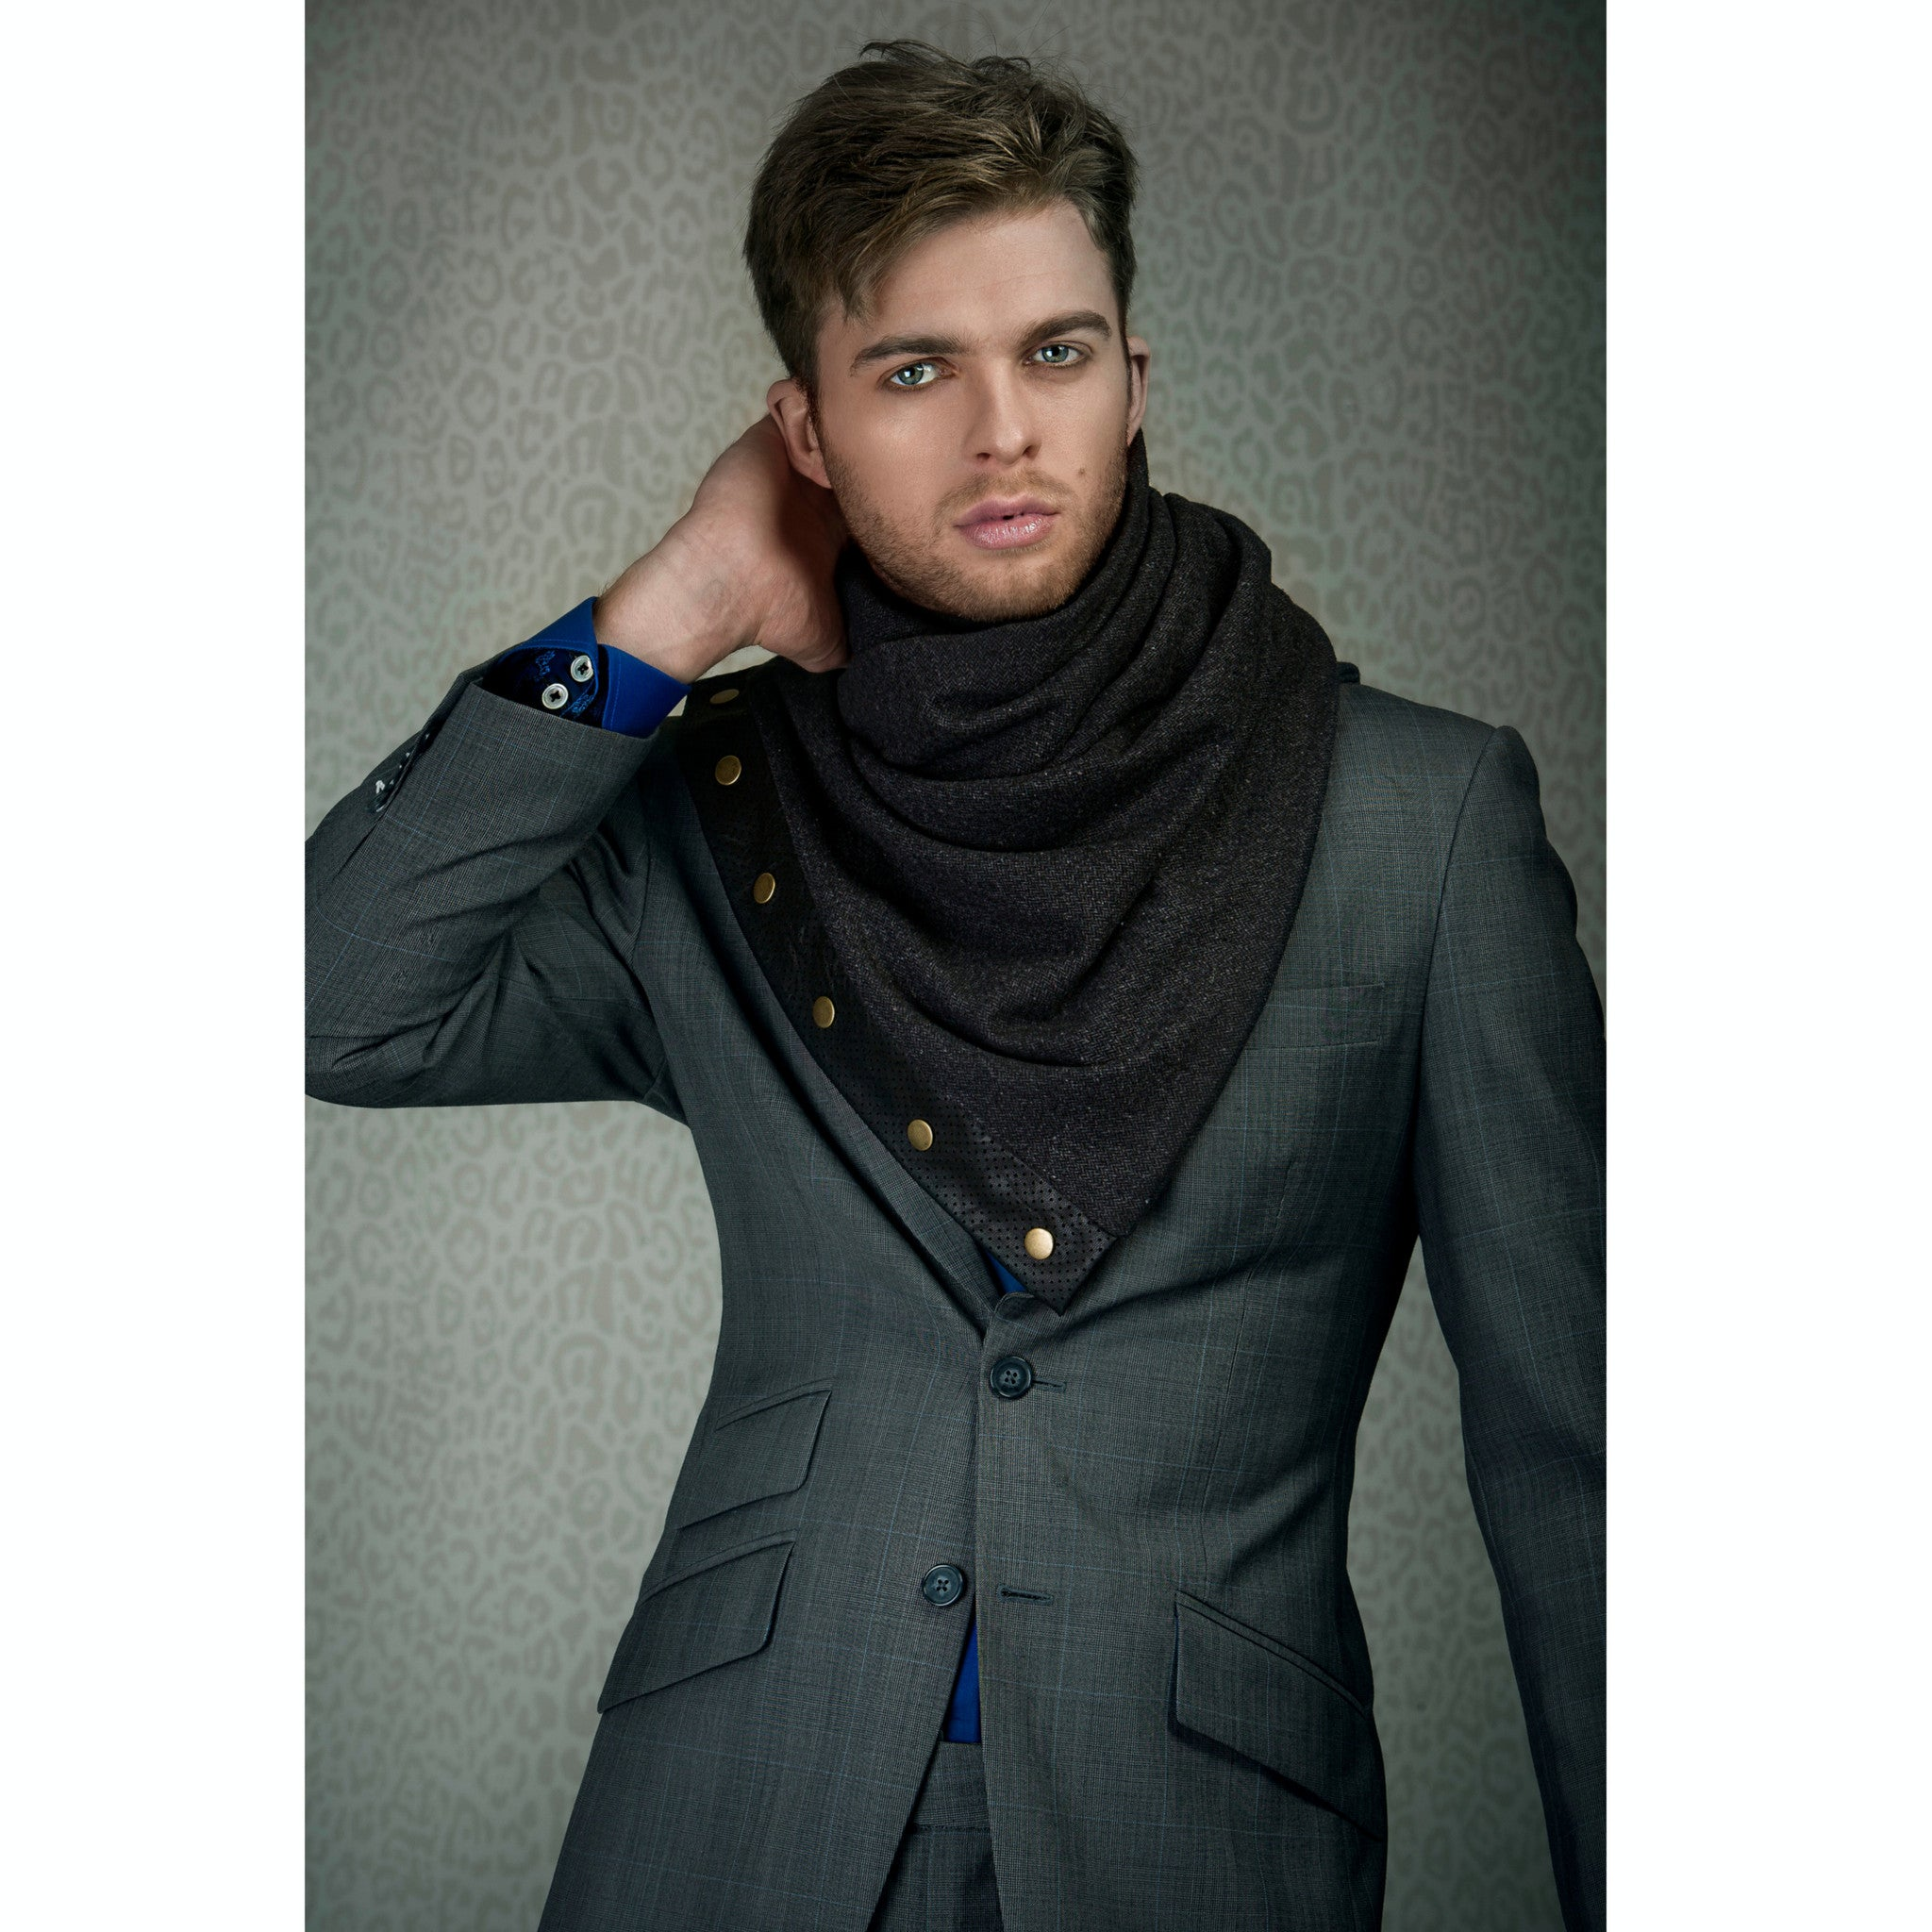 Snap scarf - light grey